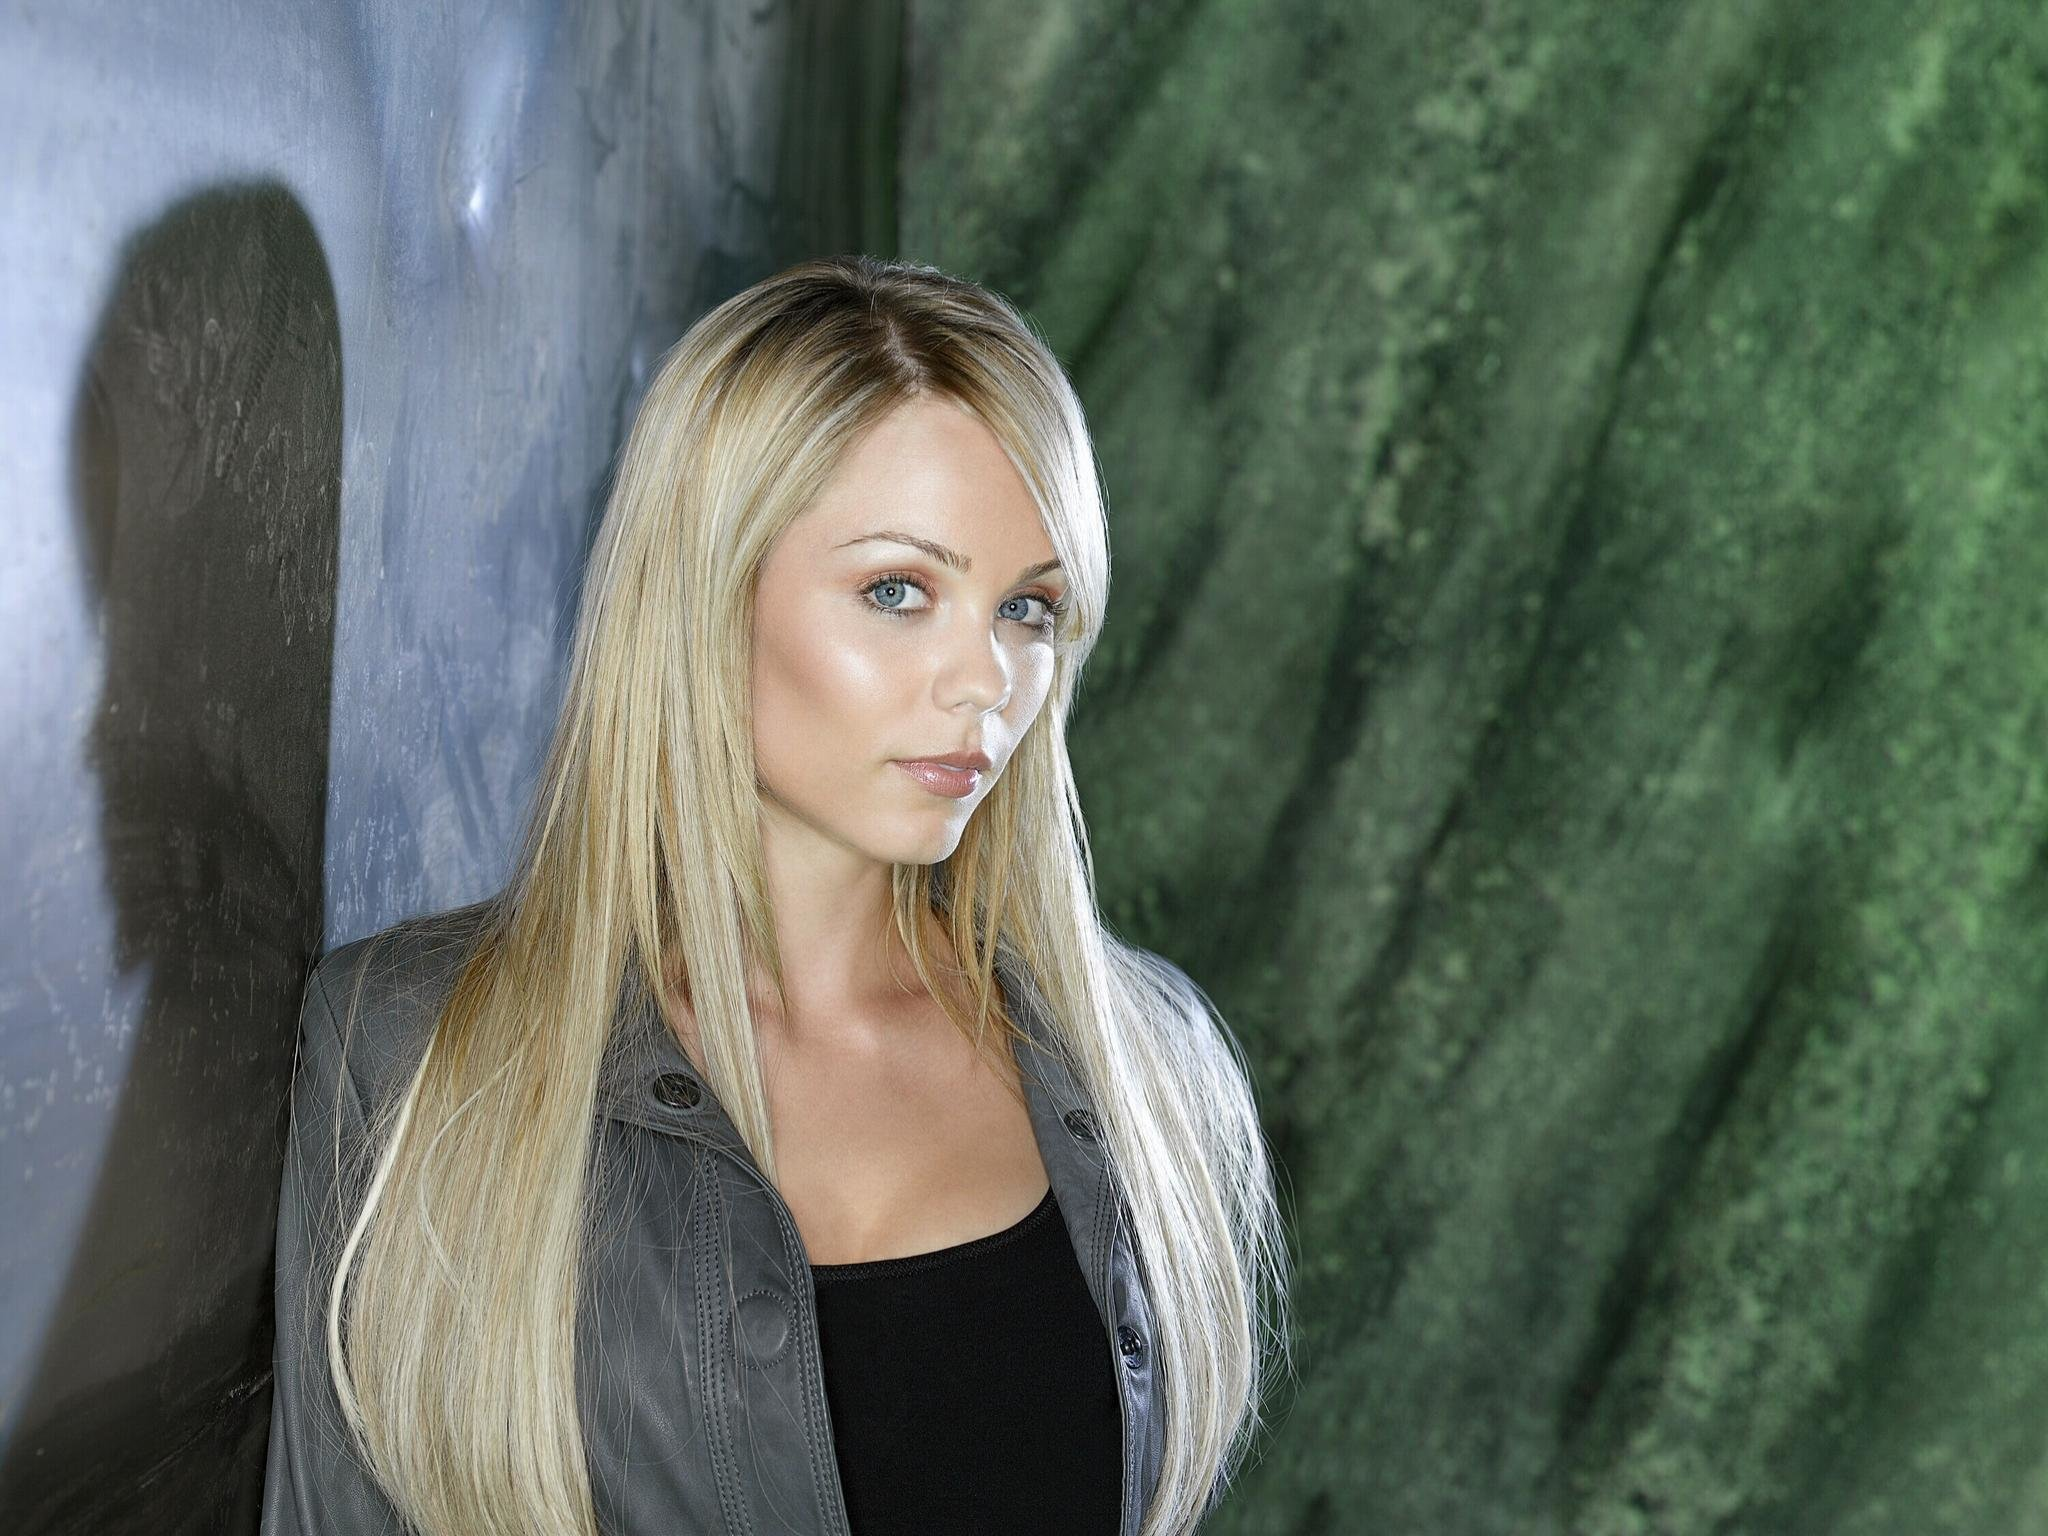 Download hd 2048x1536 Laura Vandervoort desktop background ID:210309 for free